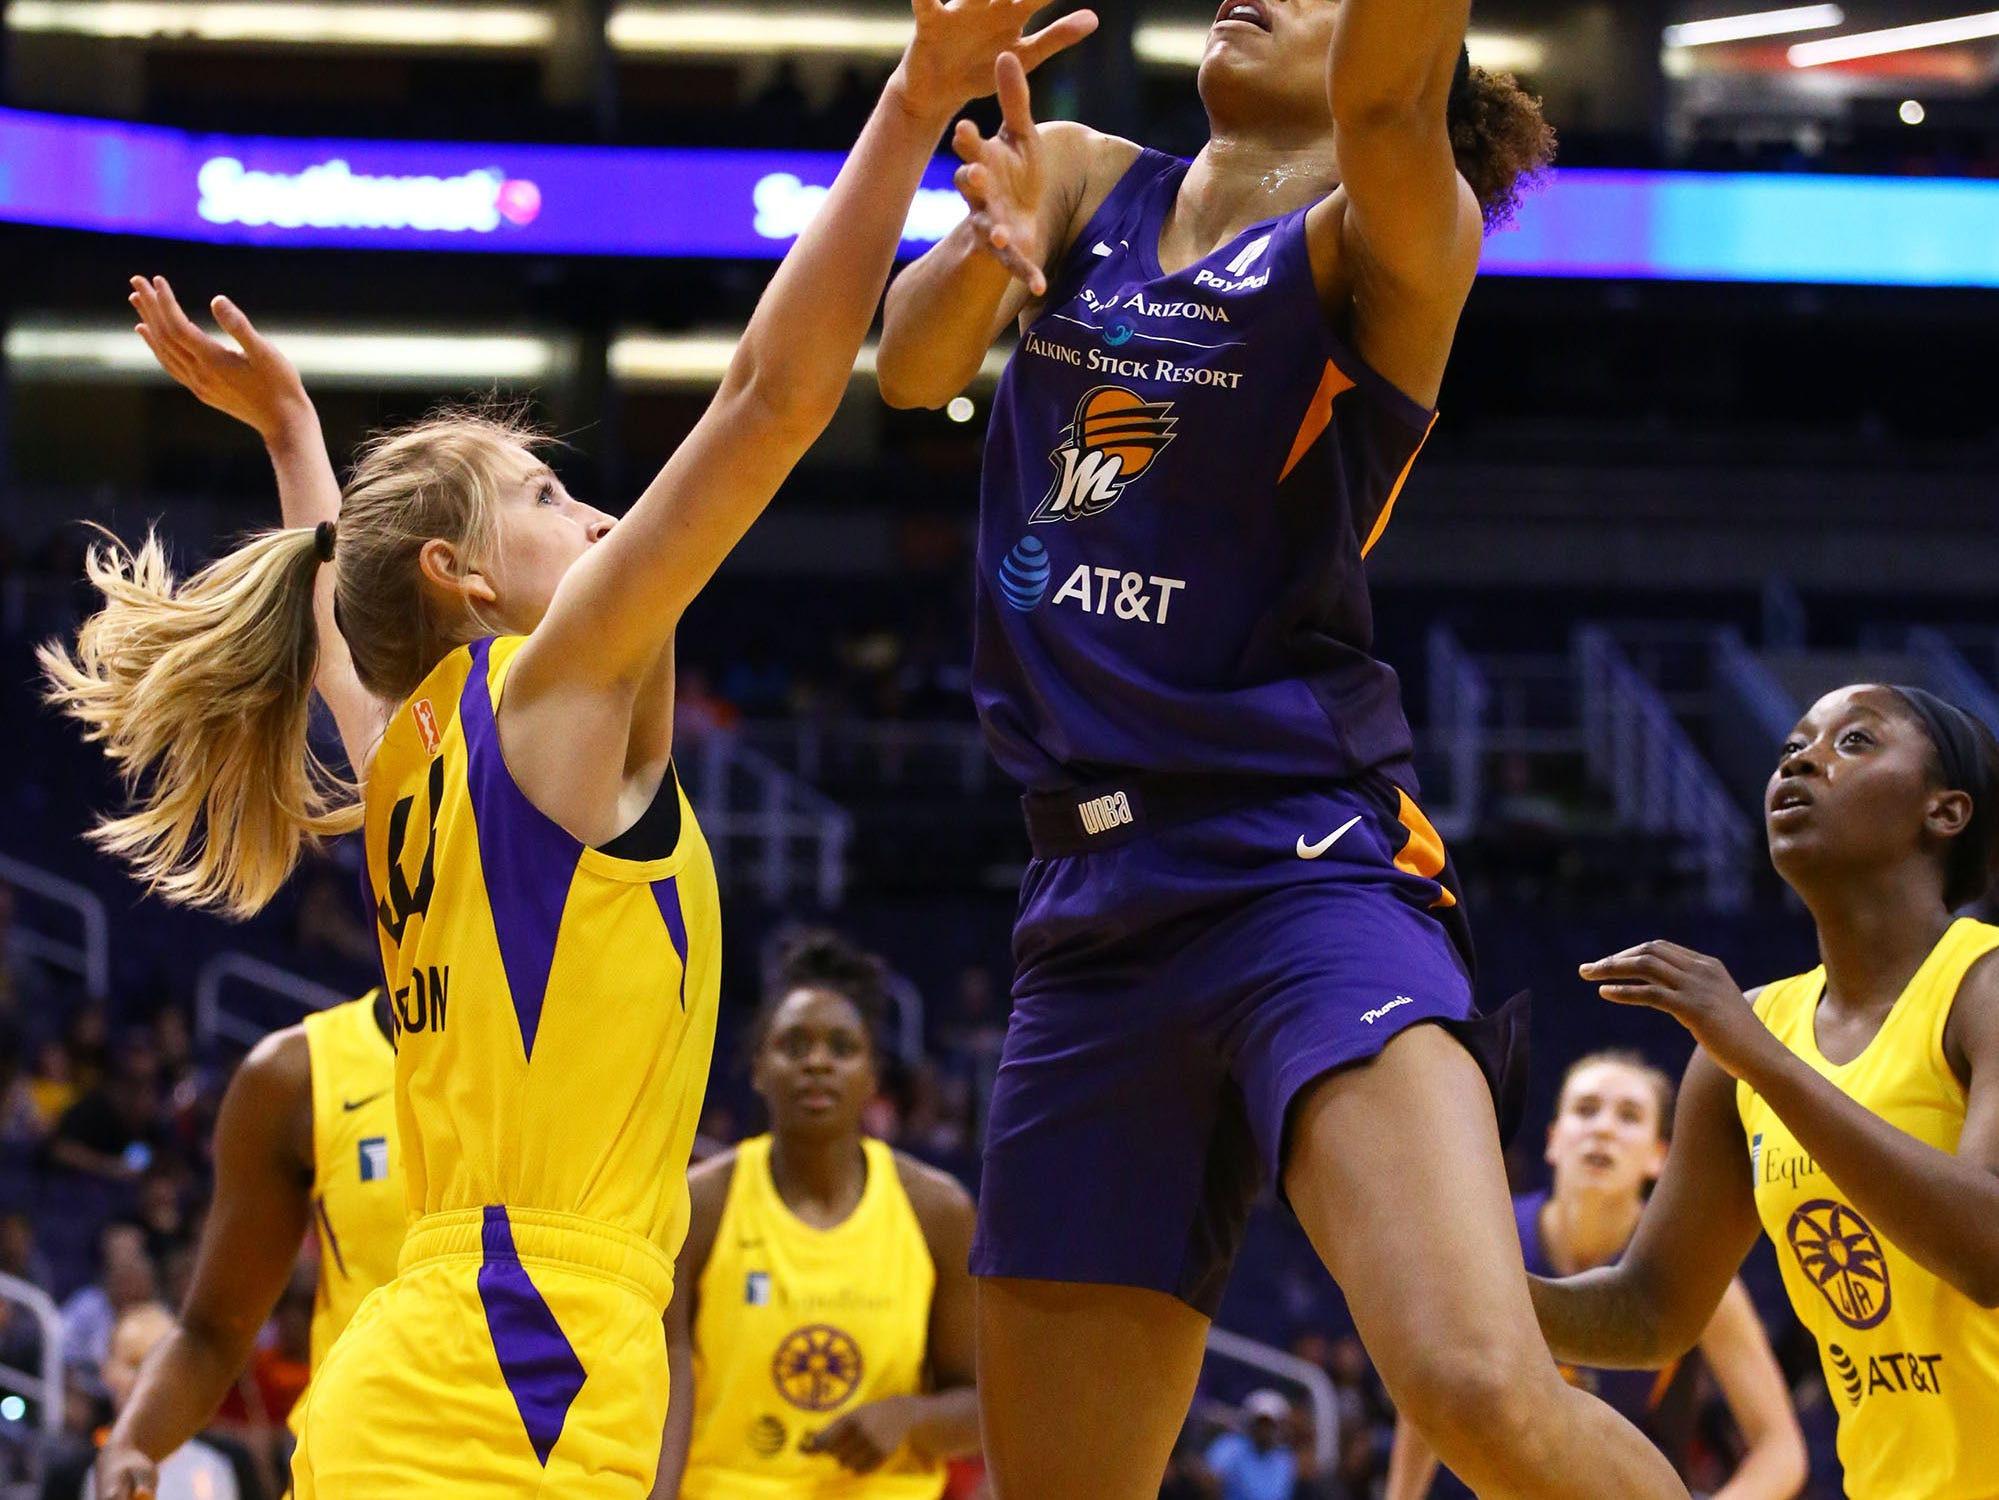 Phoenix Mercury forward Brianna Turner takes a shot against the Los Angeles Sparks in the first half during a preseason game on May 11, 2019 in Phoenix, Ariz.